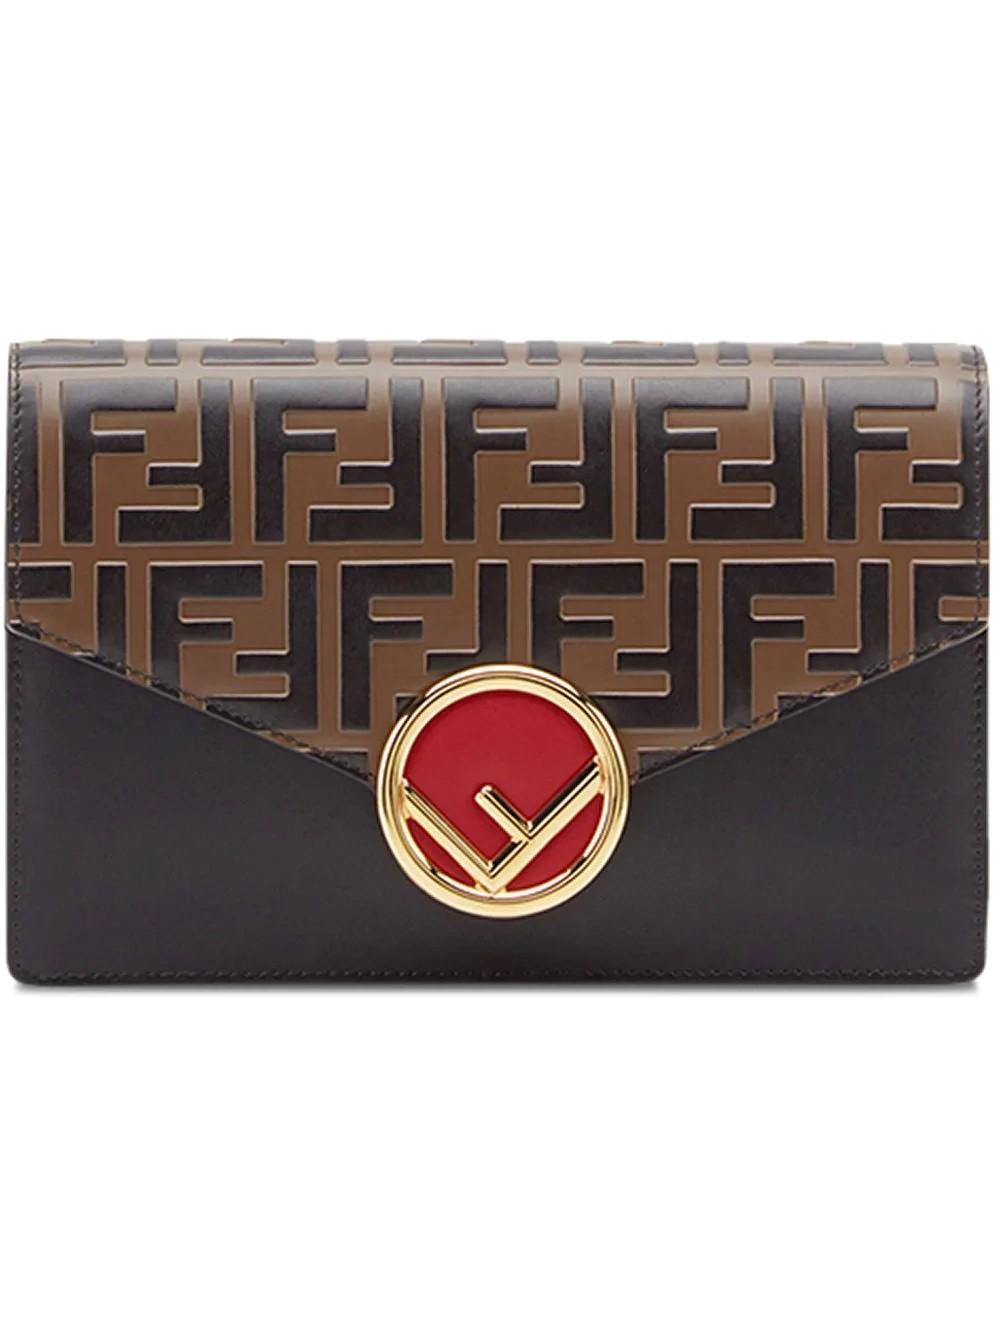 97068f1d3268 Fendi. Women s Mini Wallet Bag With Chain